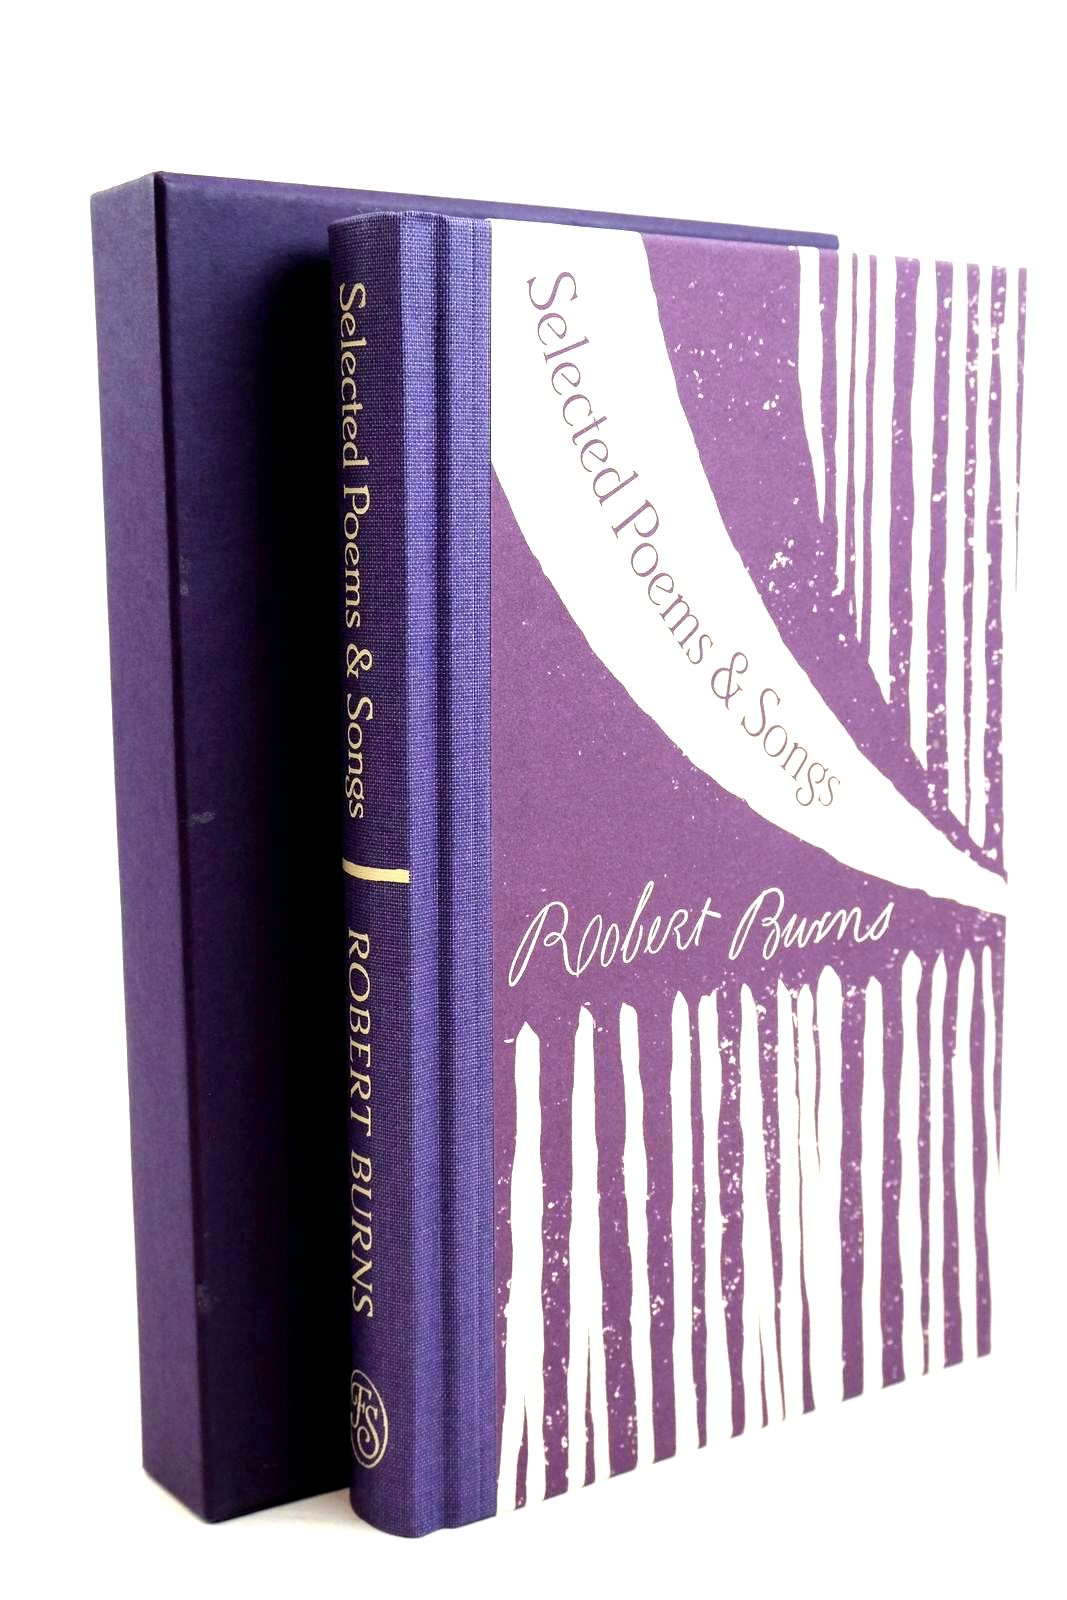 Photo of SELECTED POEMS AND SONGS written by Burns, Robert illustrated by Russell, Kit published by Folio Society (STOCK CODE: 1320783)  for sale by Stella & Rose's Books